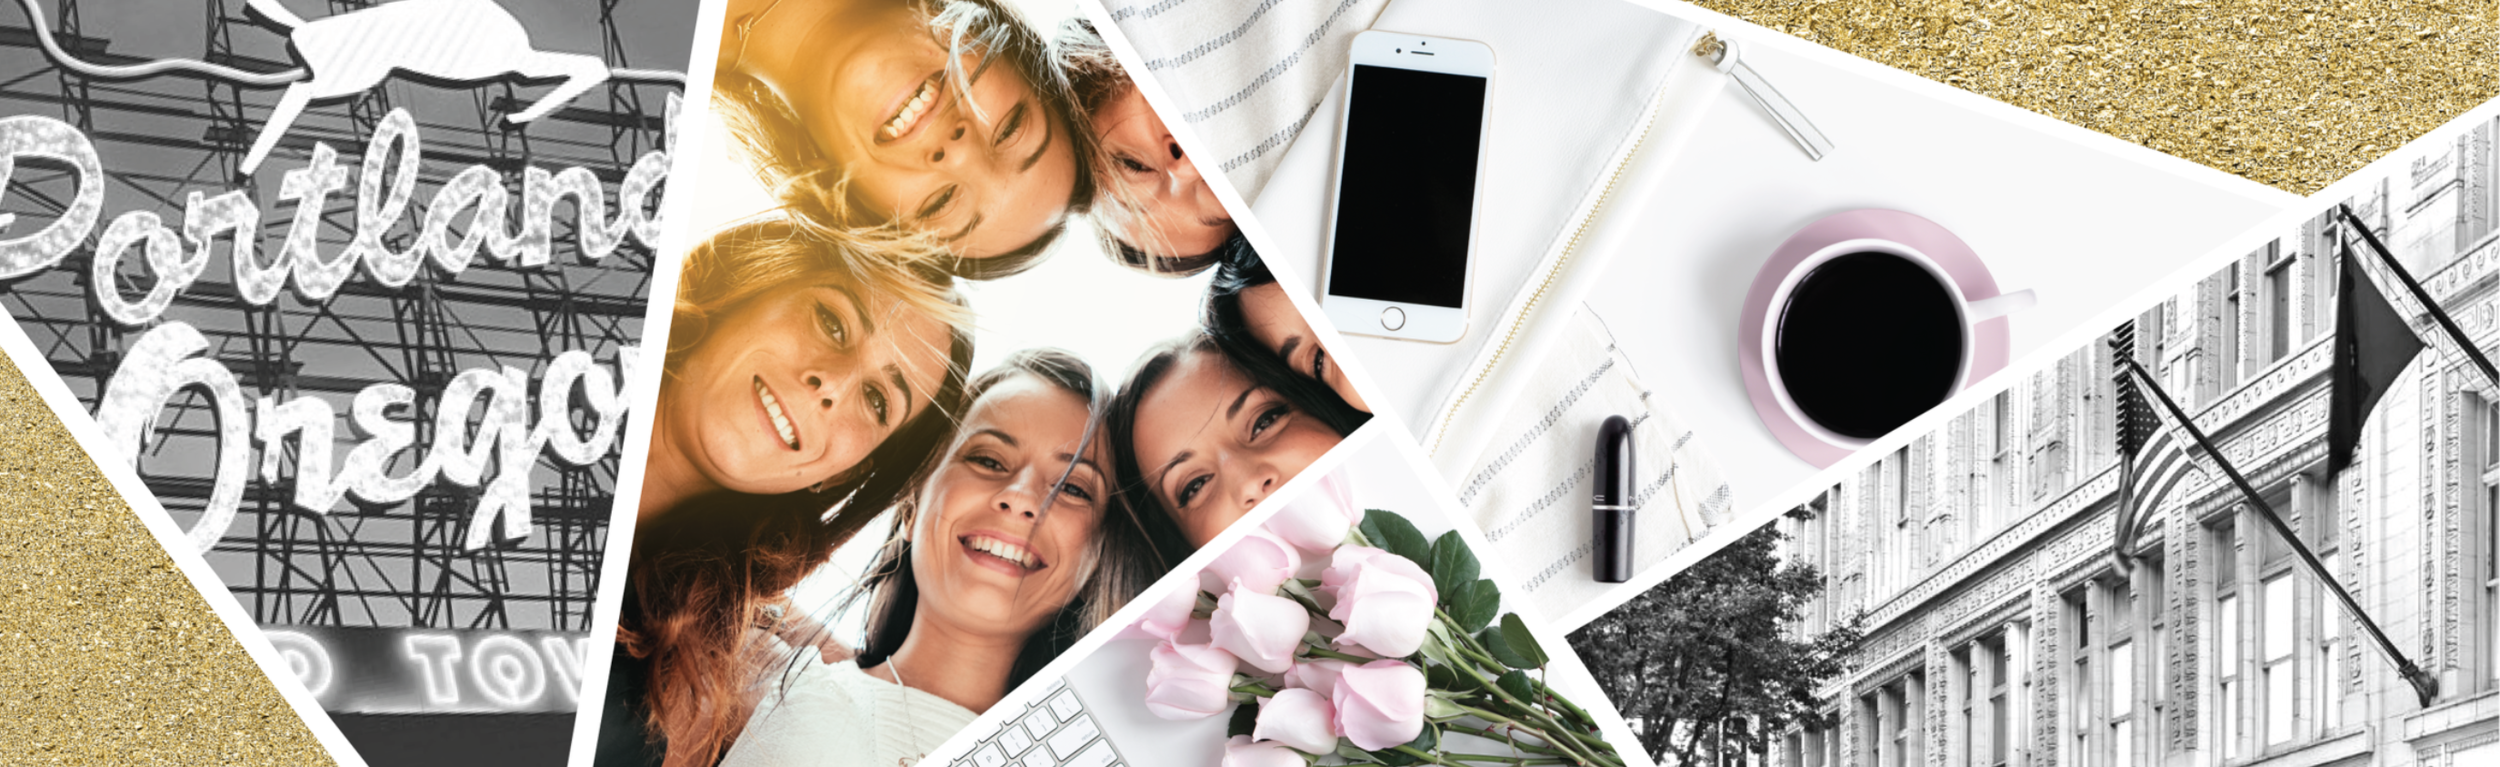 together--a boss lady experience - best conferences and workshops for creatives, female entrepreneurs, lady boss, creative, women in business